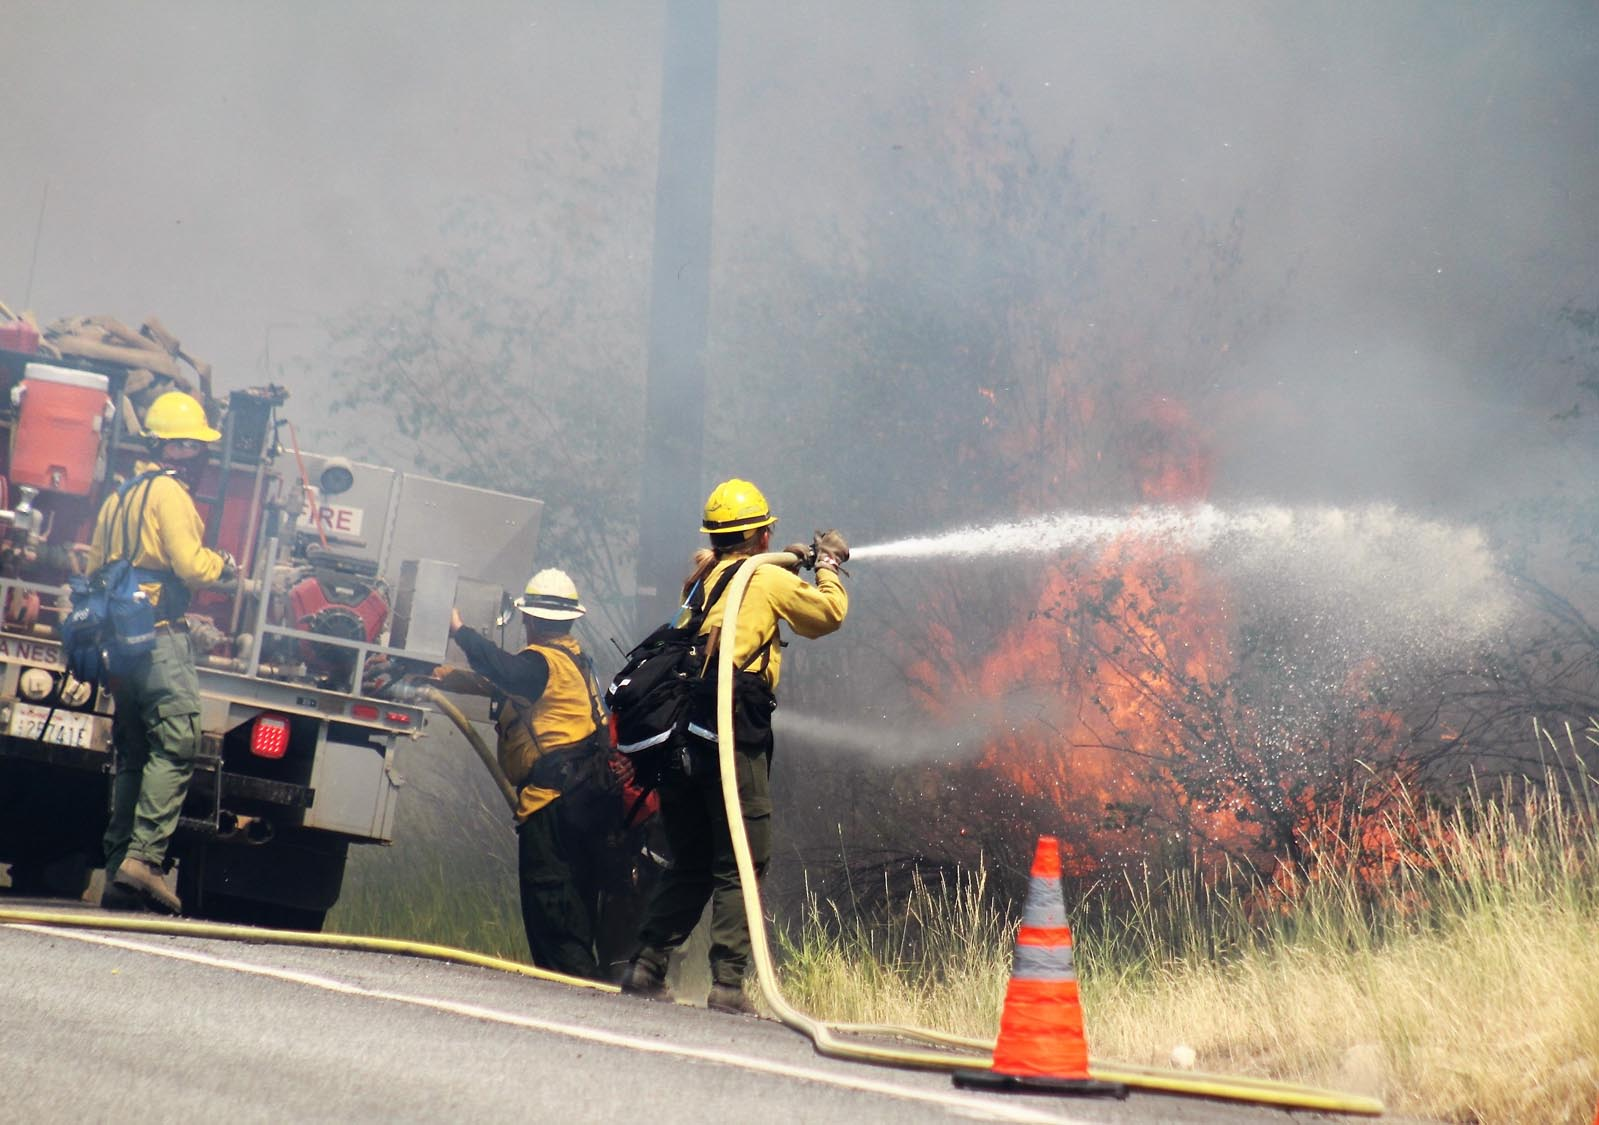 Two hoses from a DNR pumper target flames close to the highway.